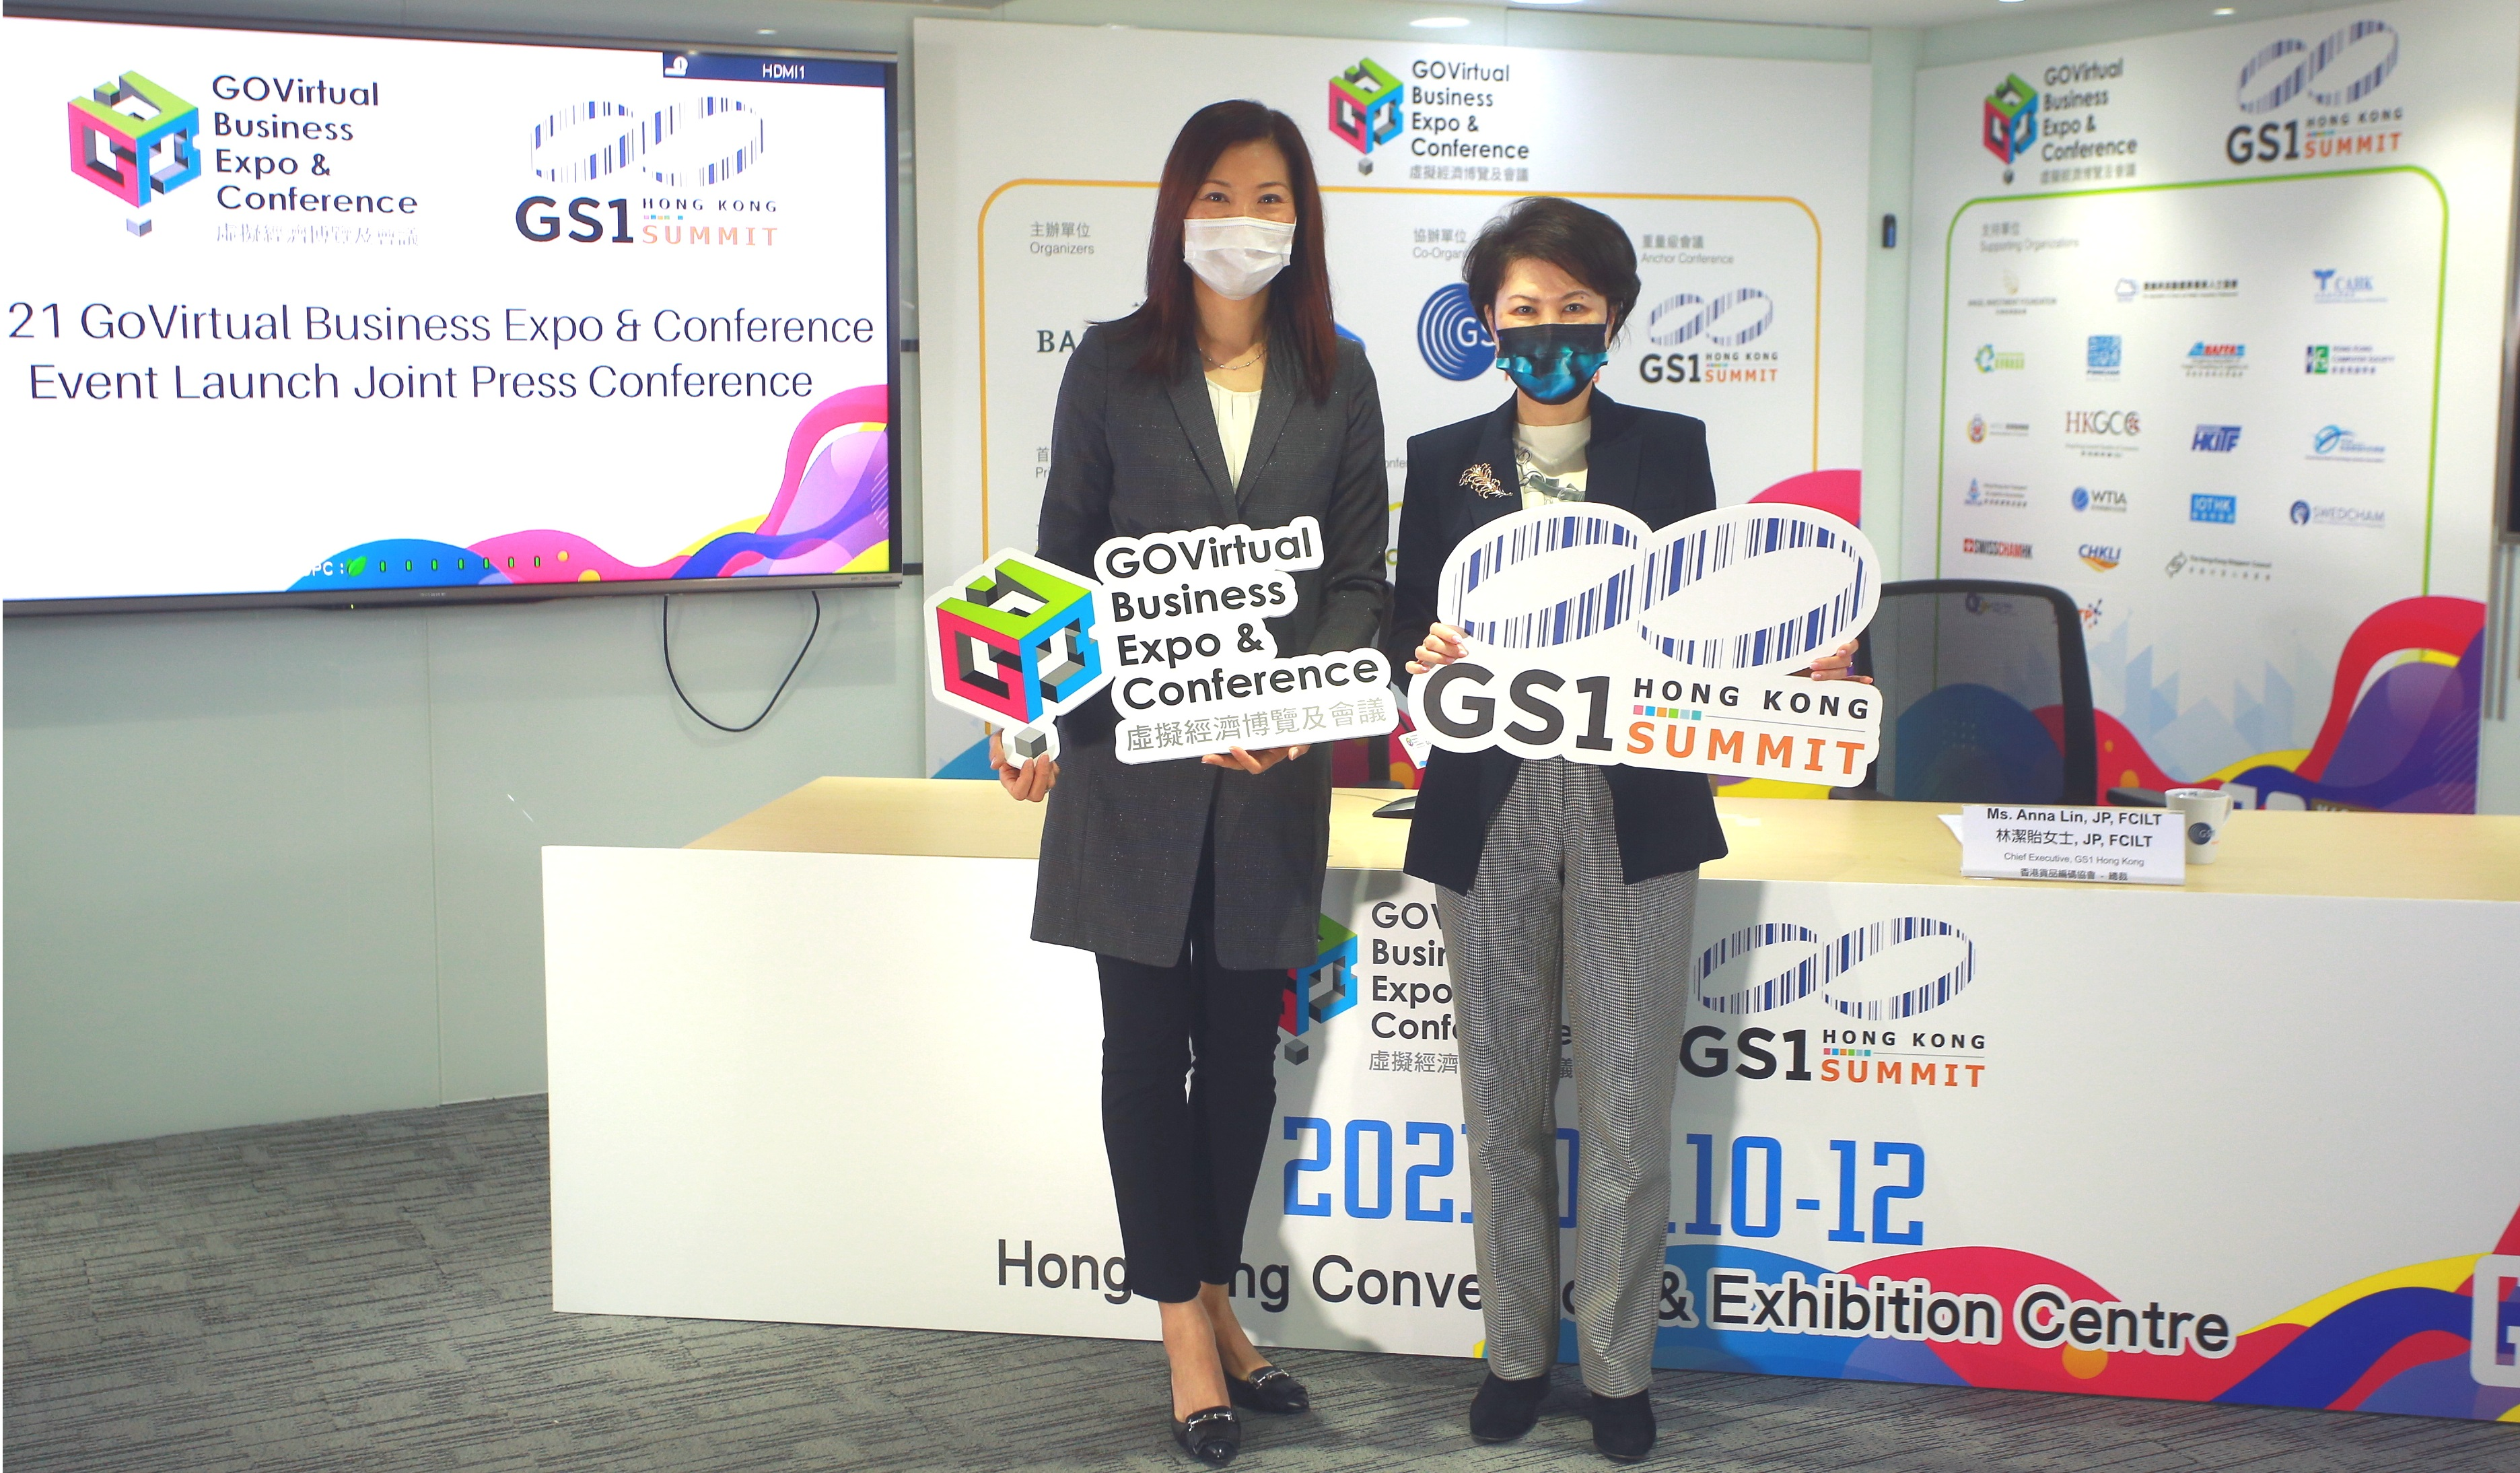 Newly Launched GOVirtual Business Expo & Conference Casts  Vote of Confidence in Hong Kong's Post Pandemic Economy Rebound